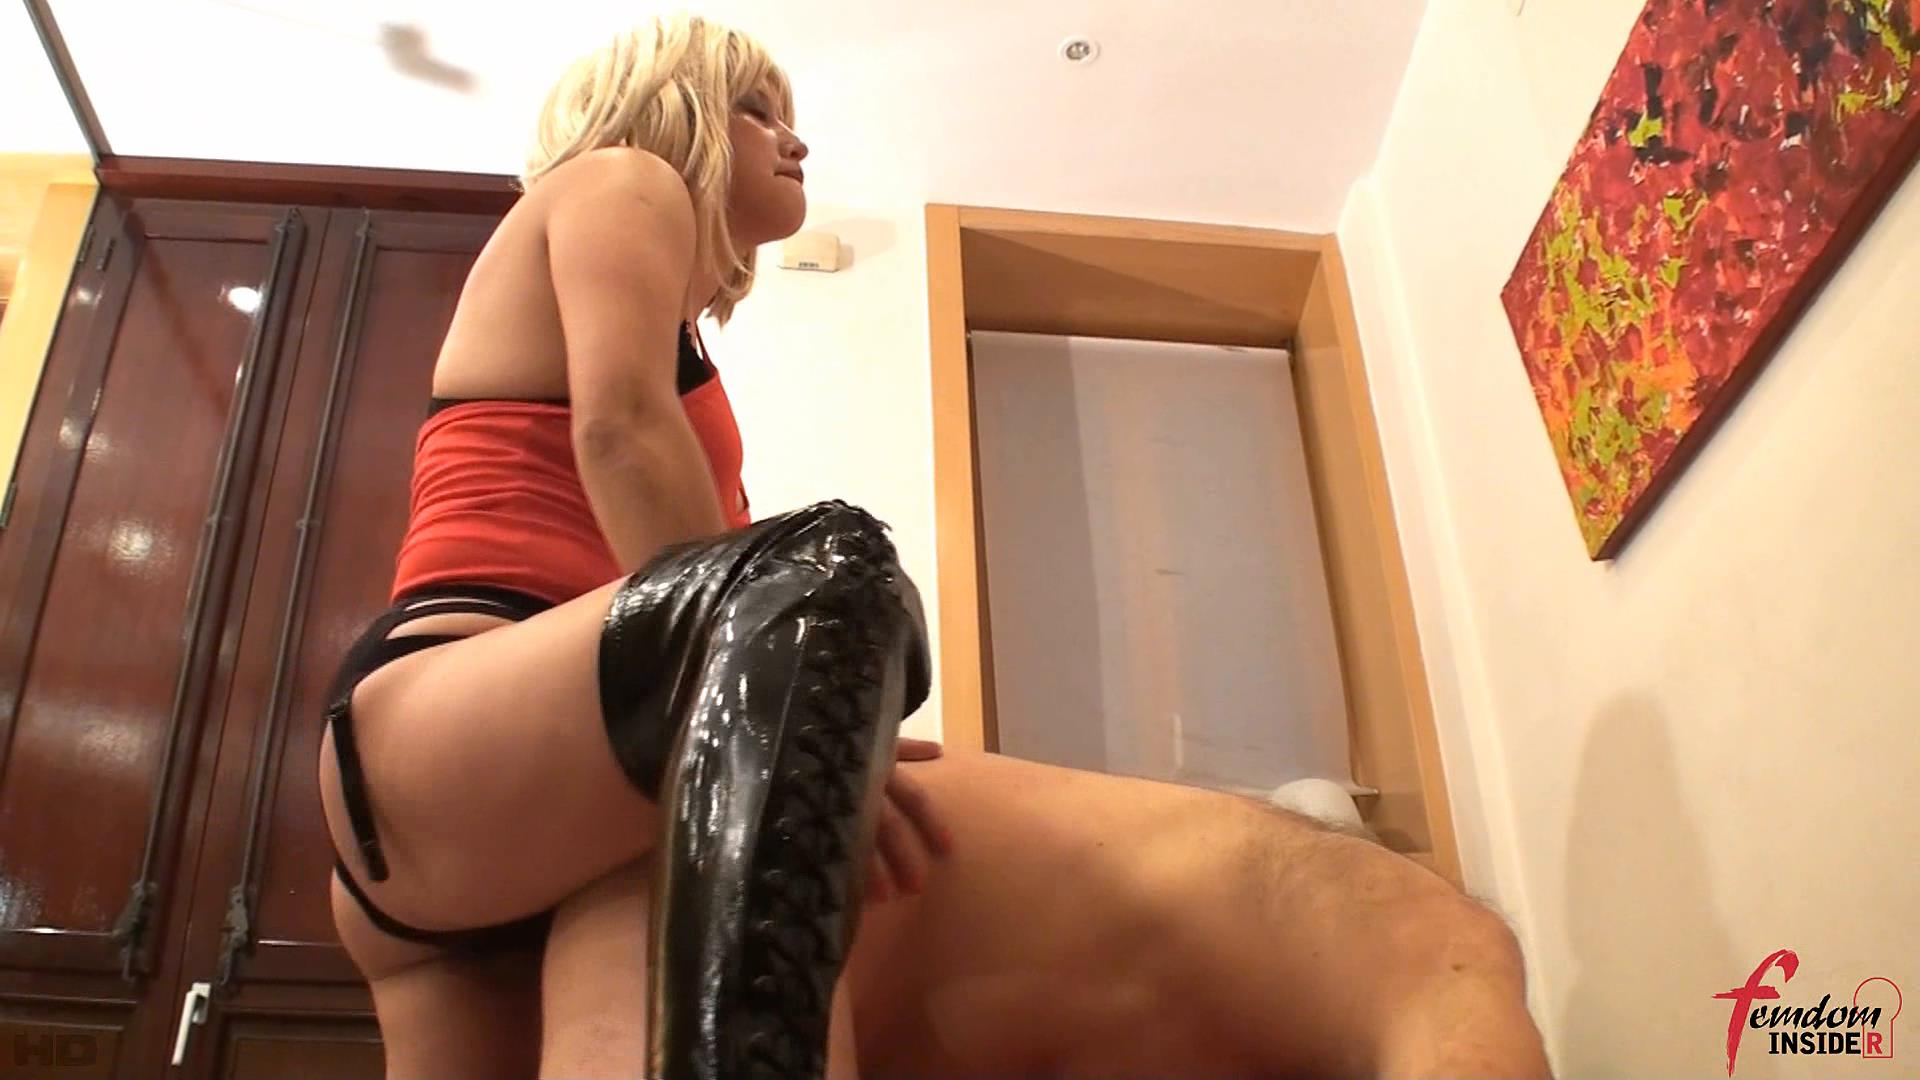 Mistress Karen In Scene: Mistress Karen Loves Sodomy - FEMDOMINSIDER - FULL HD/1080p/WMV